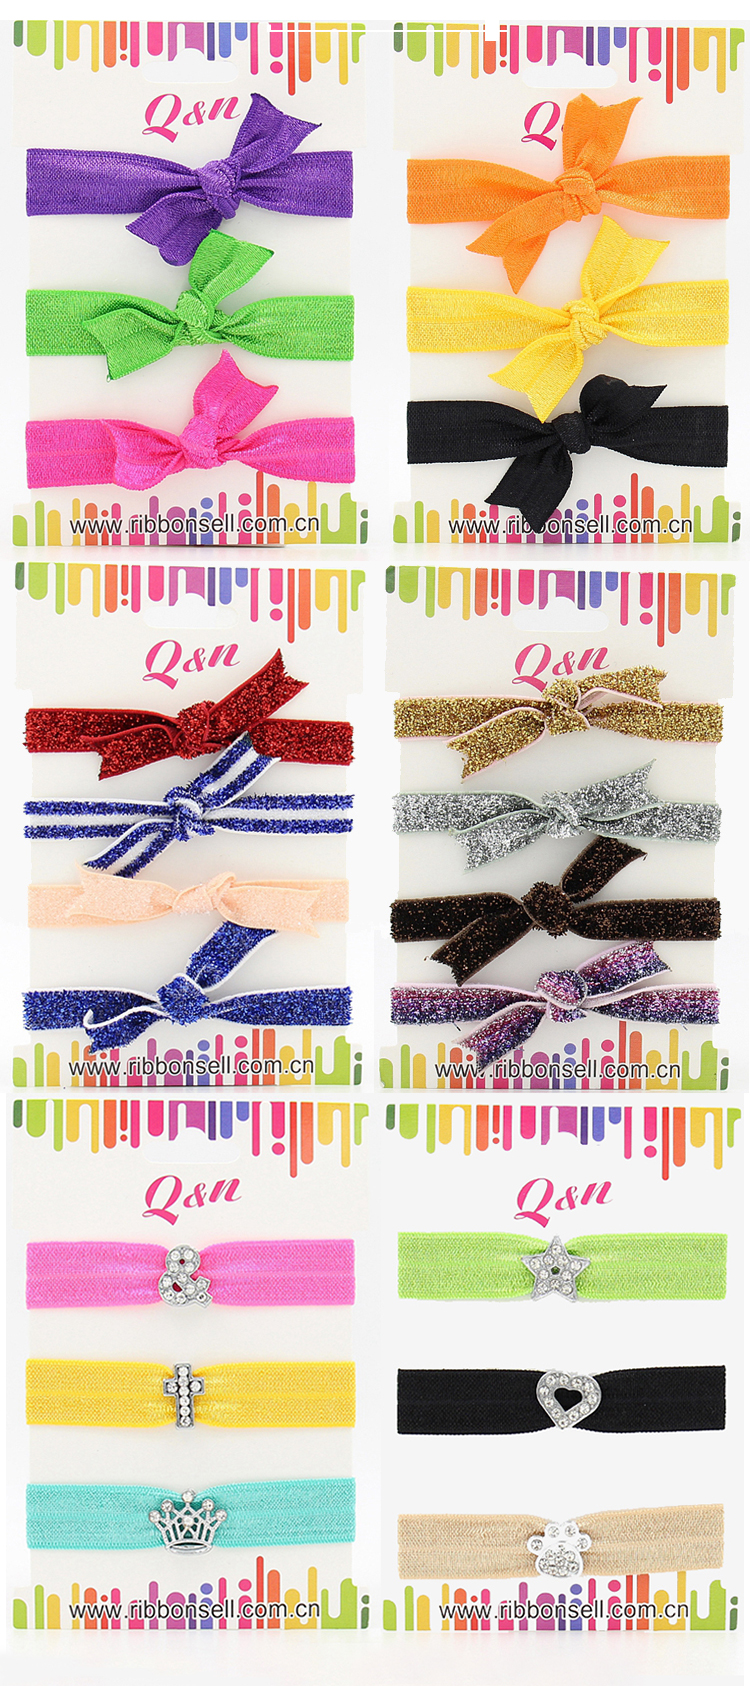 Custom mix patterns glitter solid printed color soft elastic black hair ties